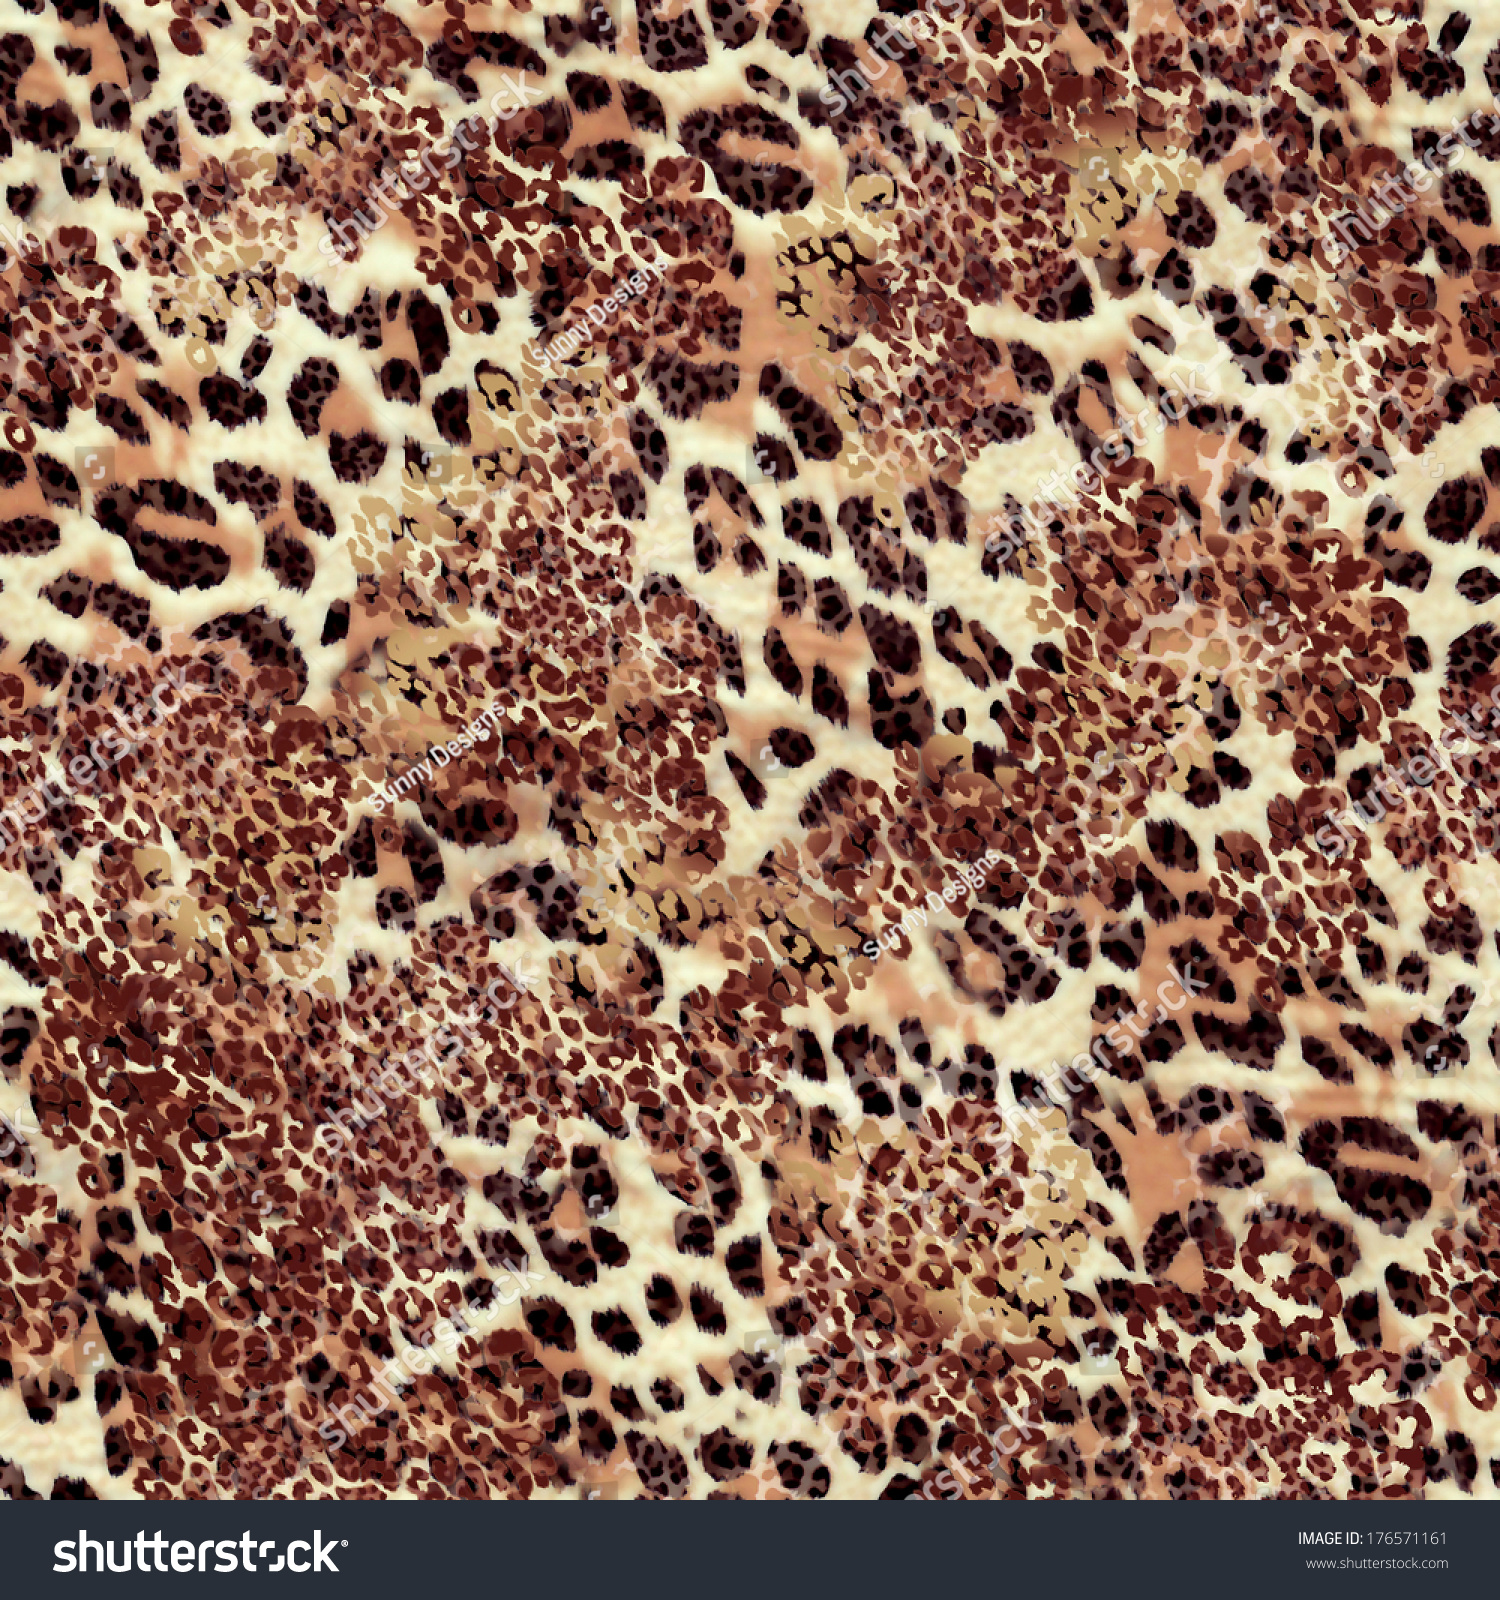 Awesome Gallery Of Leopard Print Business Cards - Business Cards ...